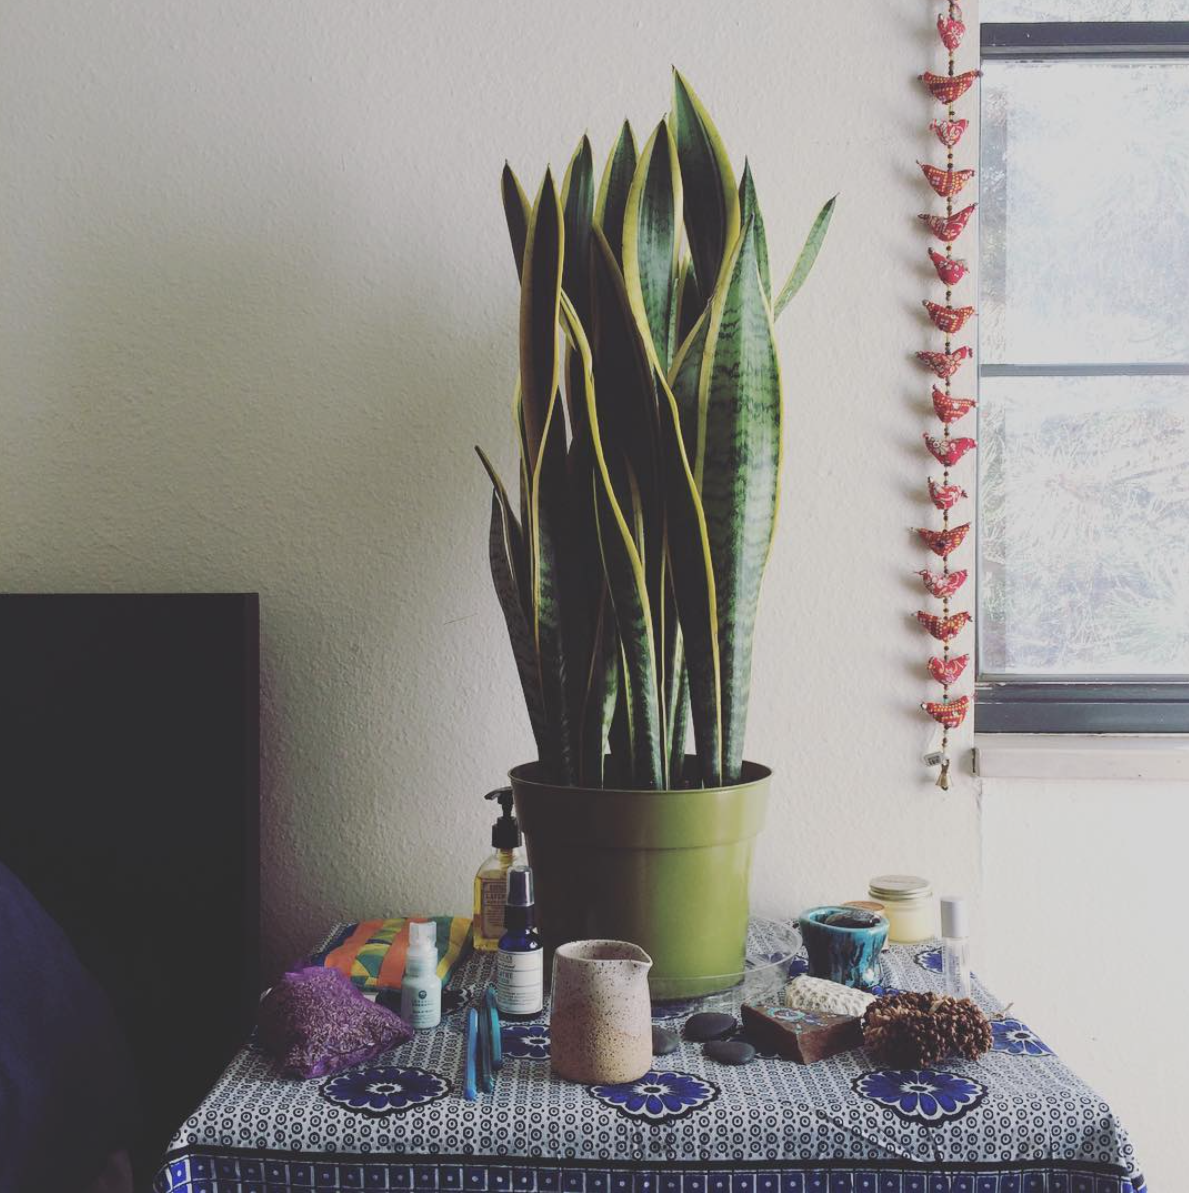 Snake plants might not shed their skin but they share the same wild, new world-building spirit as snakes.